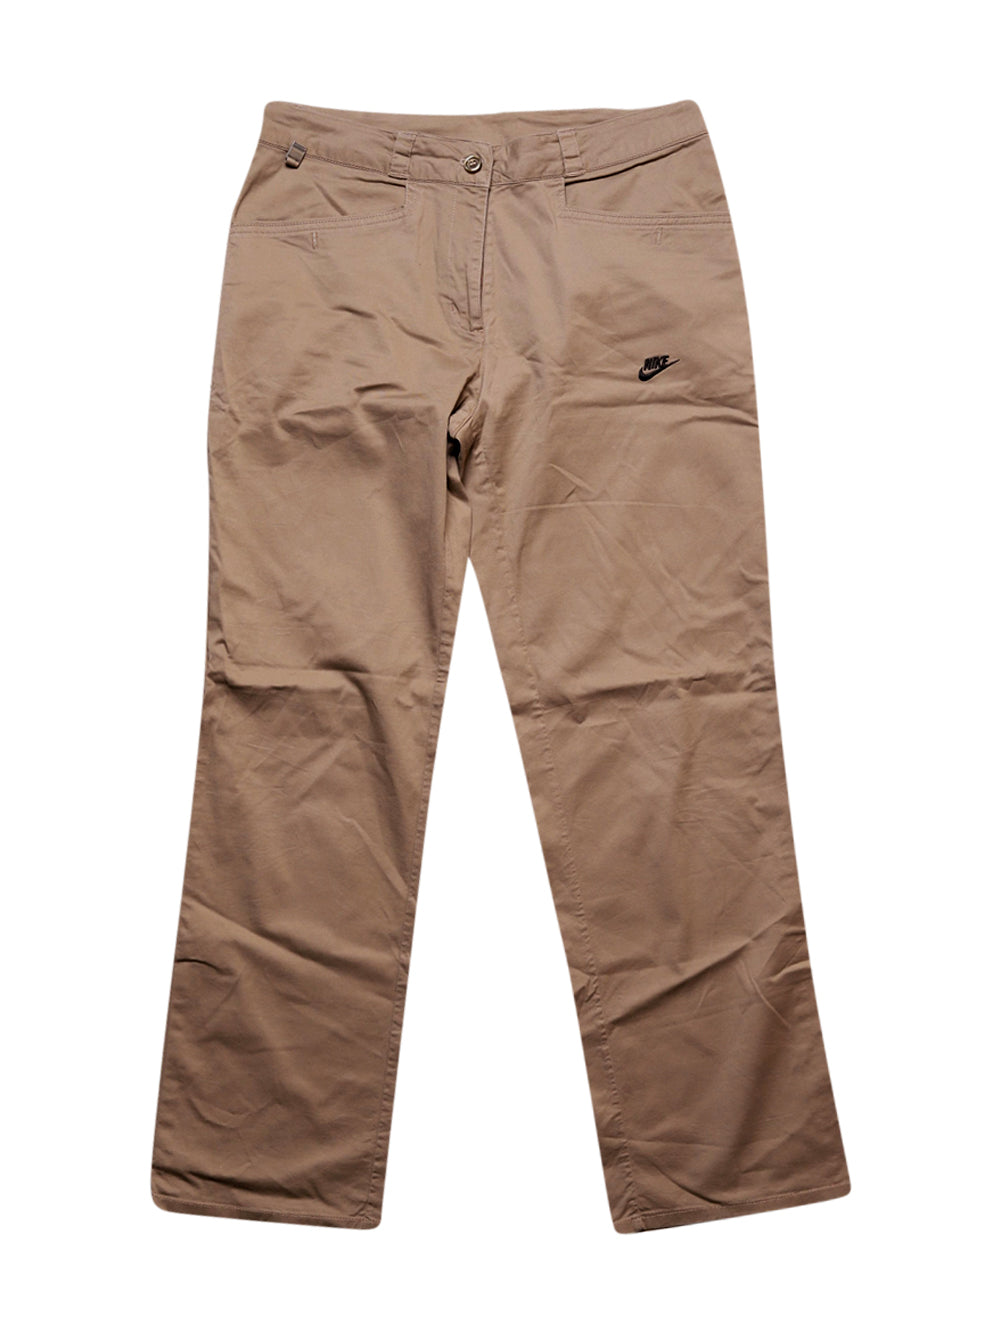 Front photo of Preloved Nike Beige Man's trousers - size 36/S